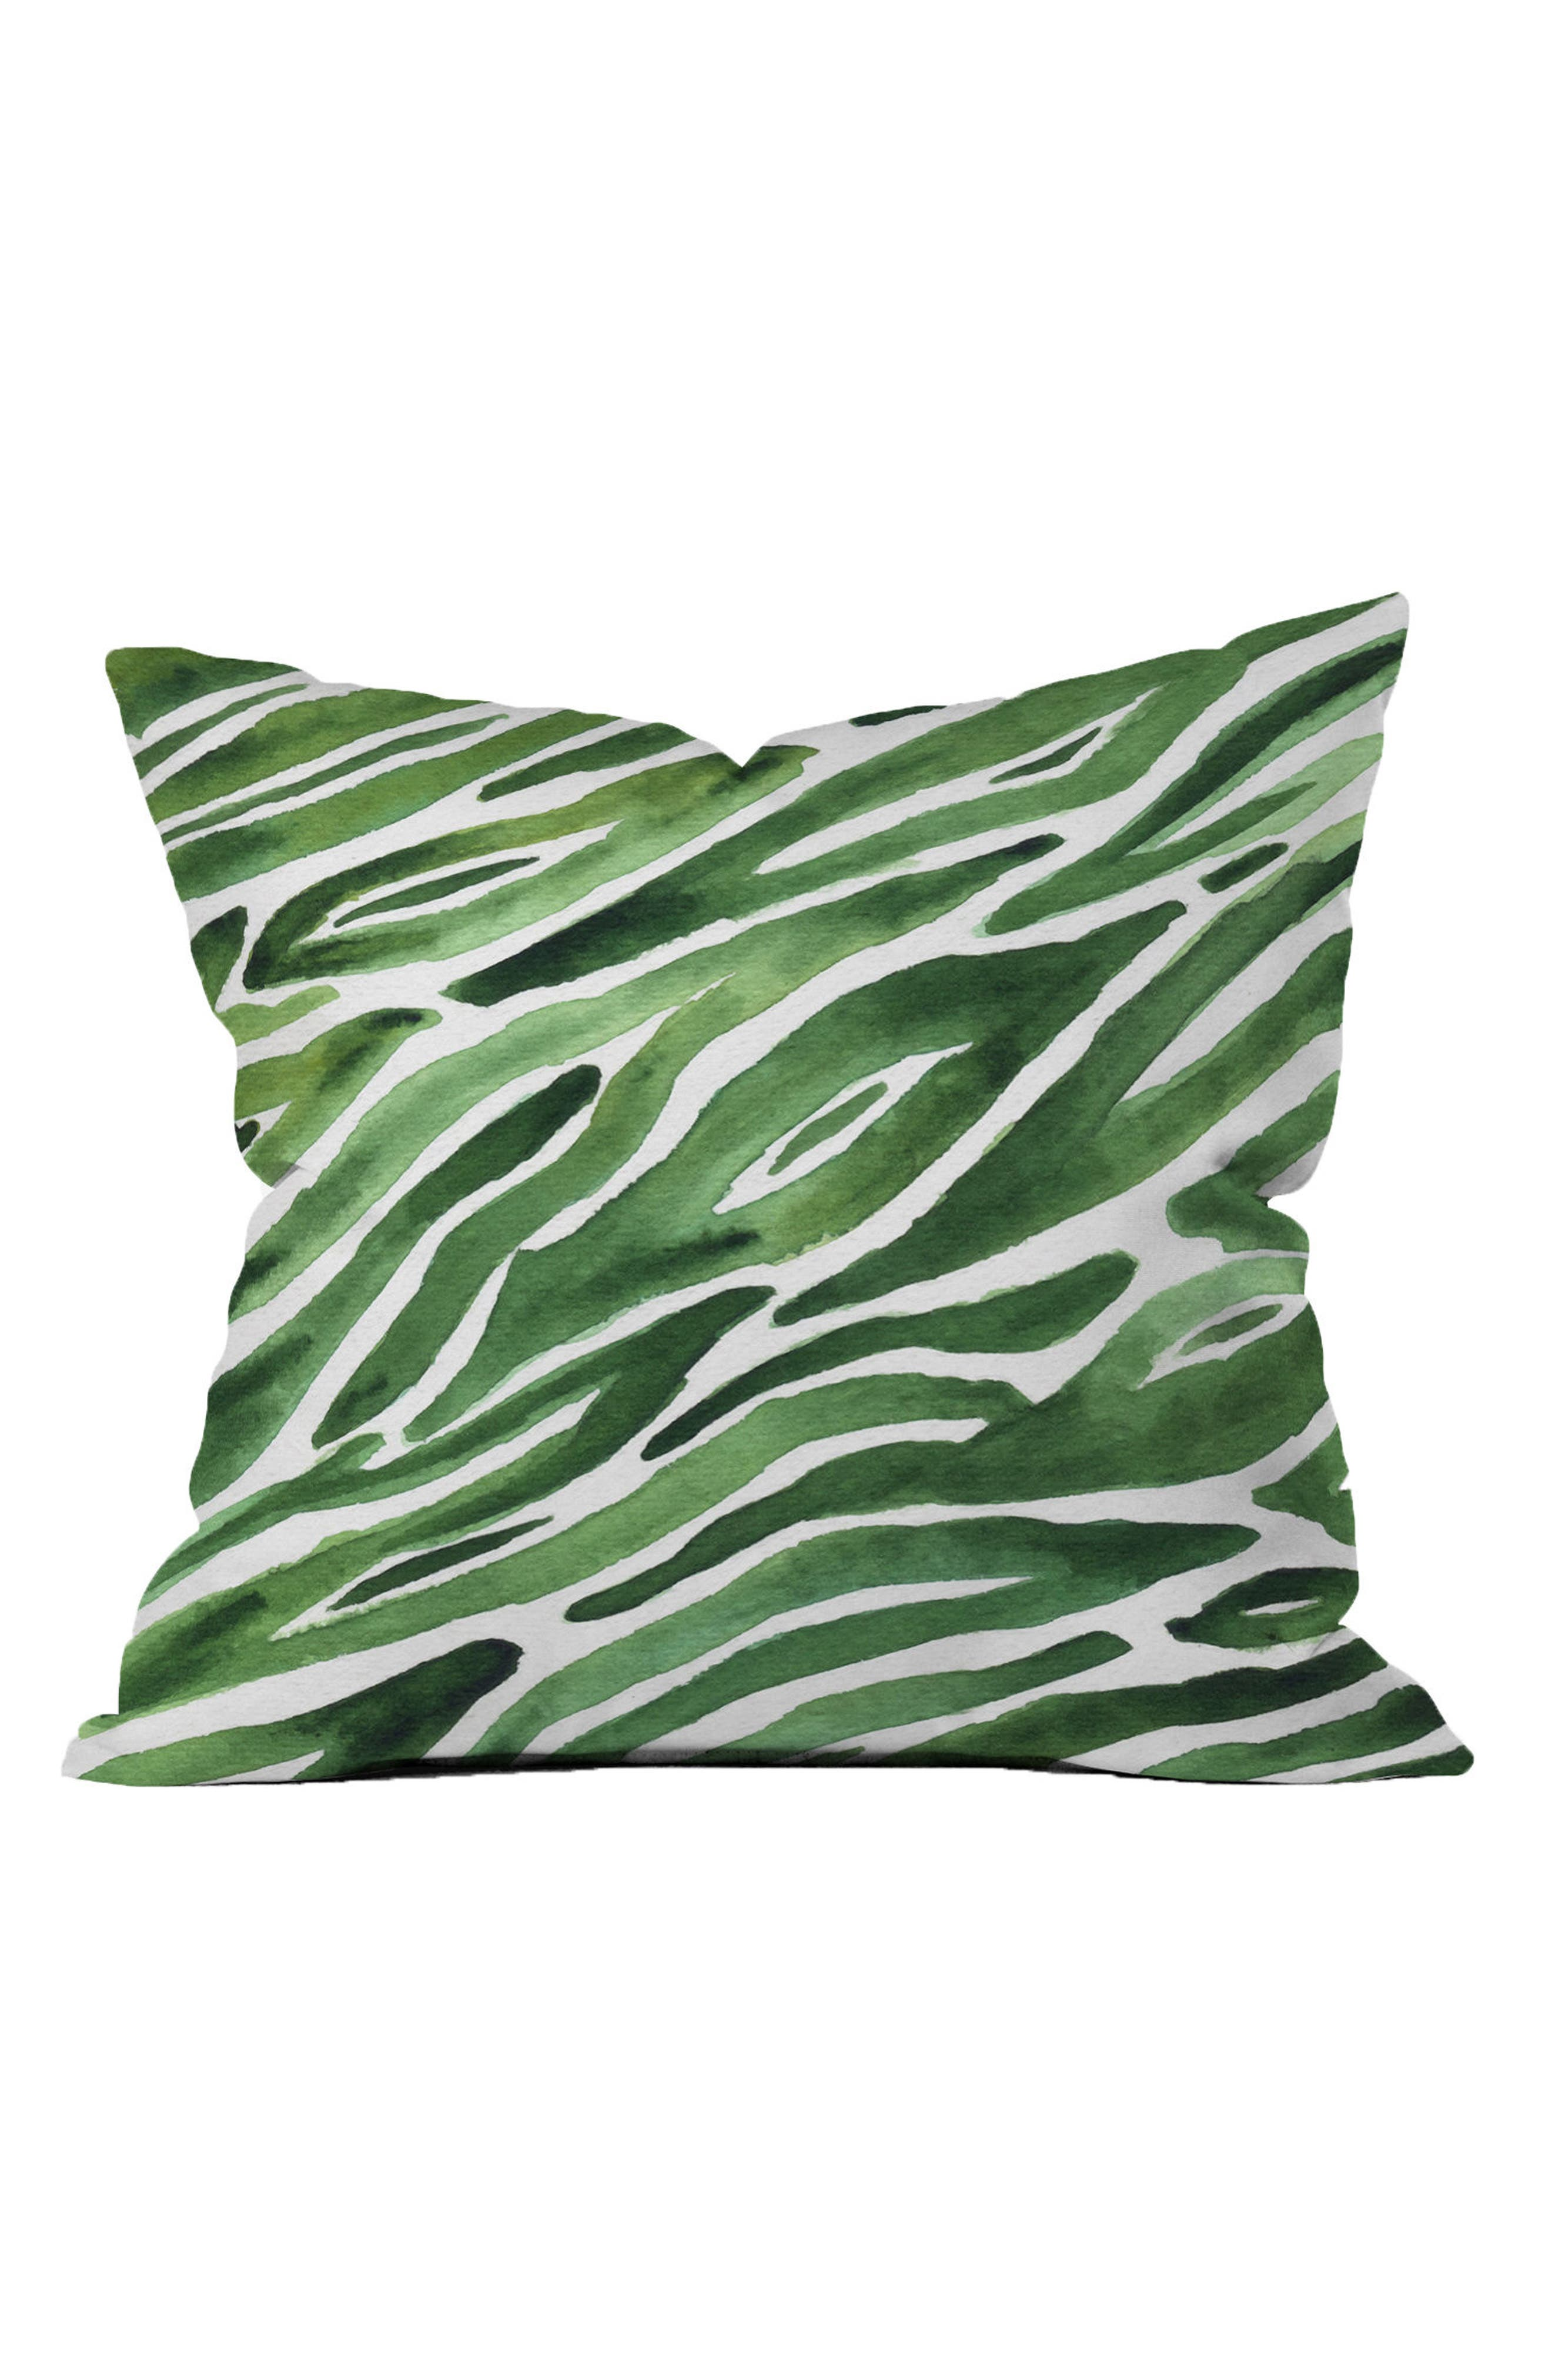 DENY DESIGNS Elena Blanco Accent Pillow, Main, color, 300